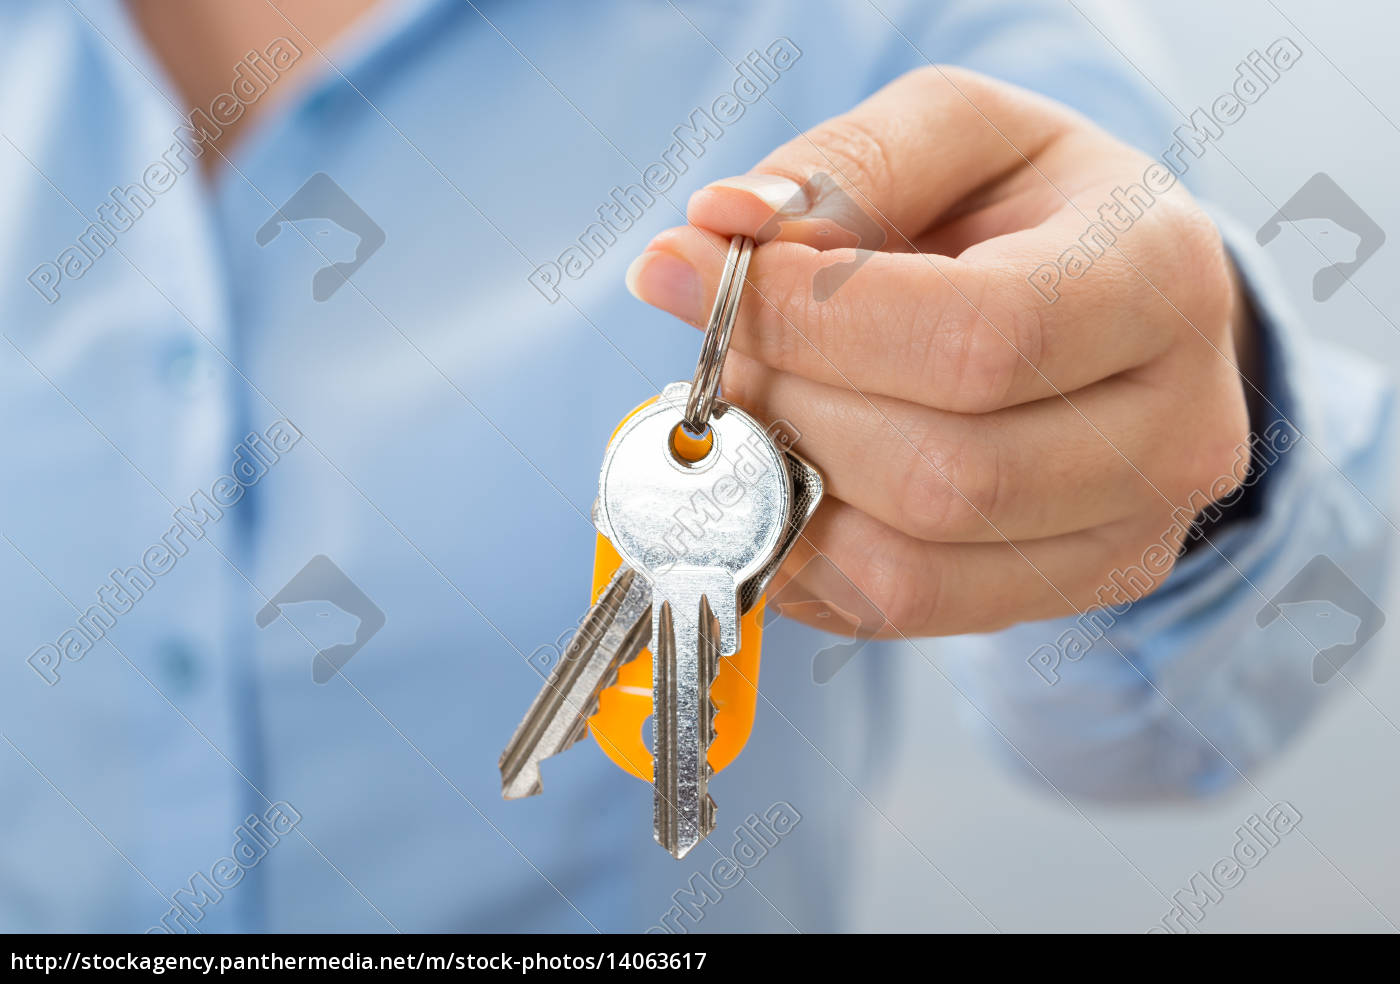 businessperson, hand, holding, key - 14063617